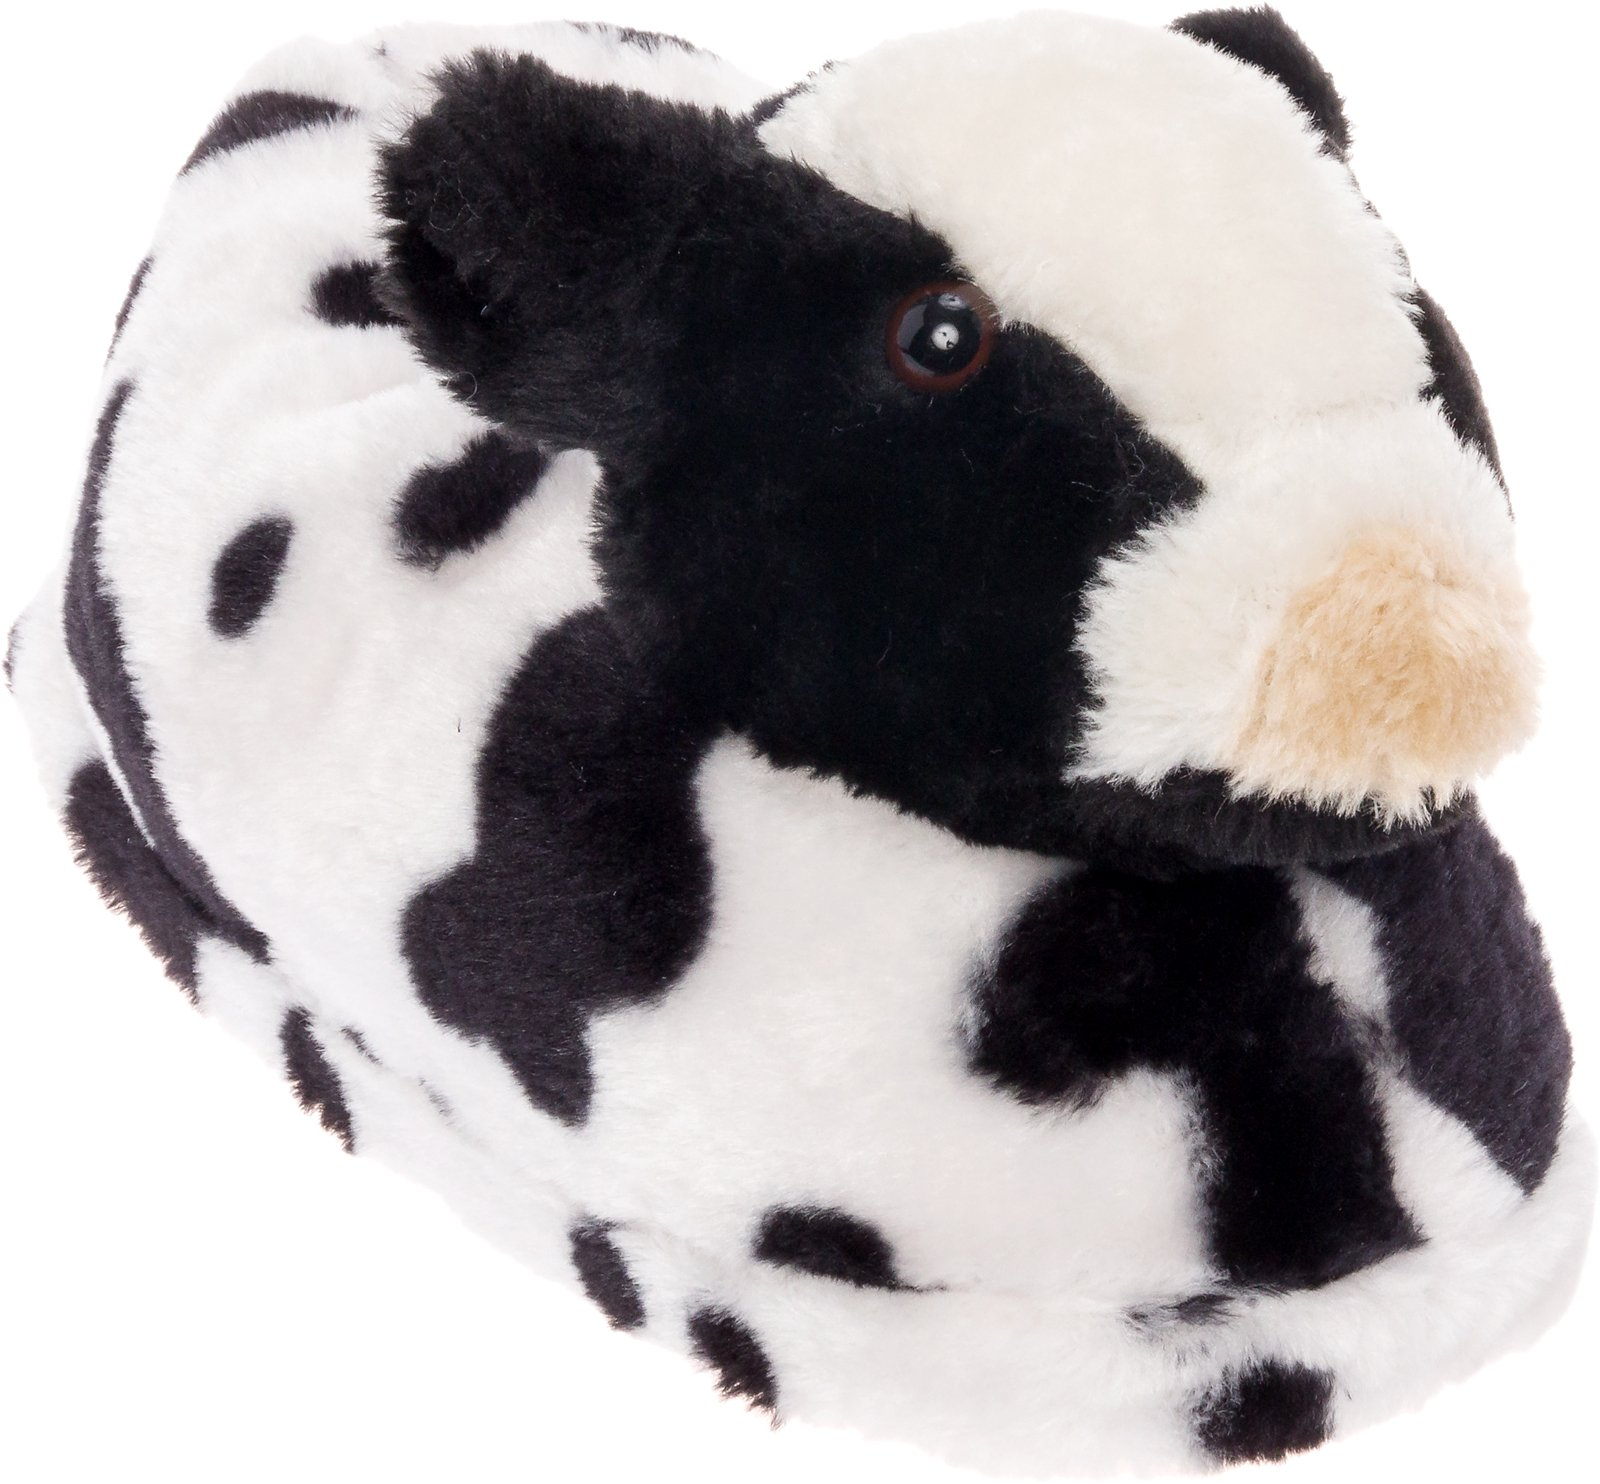 ccb31a509a9 Silver Lilly Cow Slippers - Plush Animal Slippers w Comfort Foam Support by